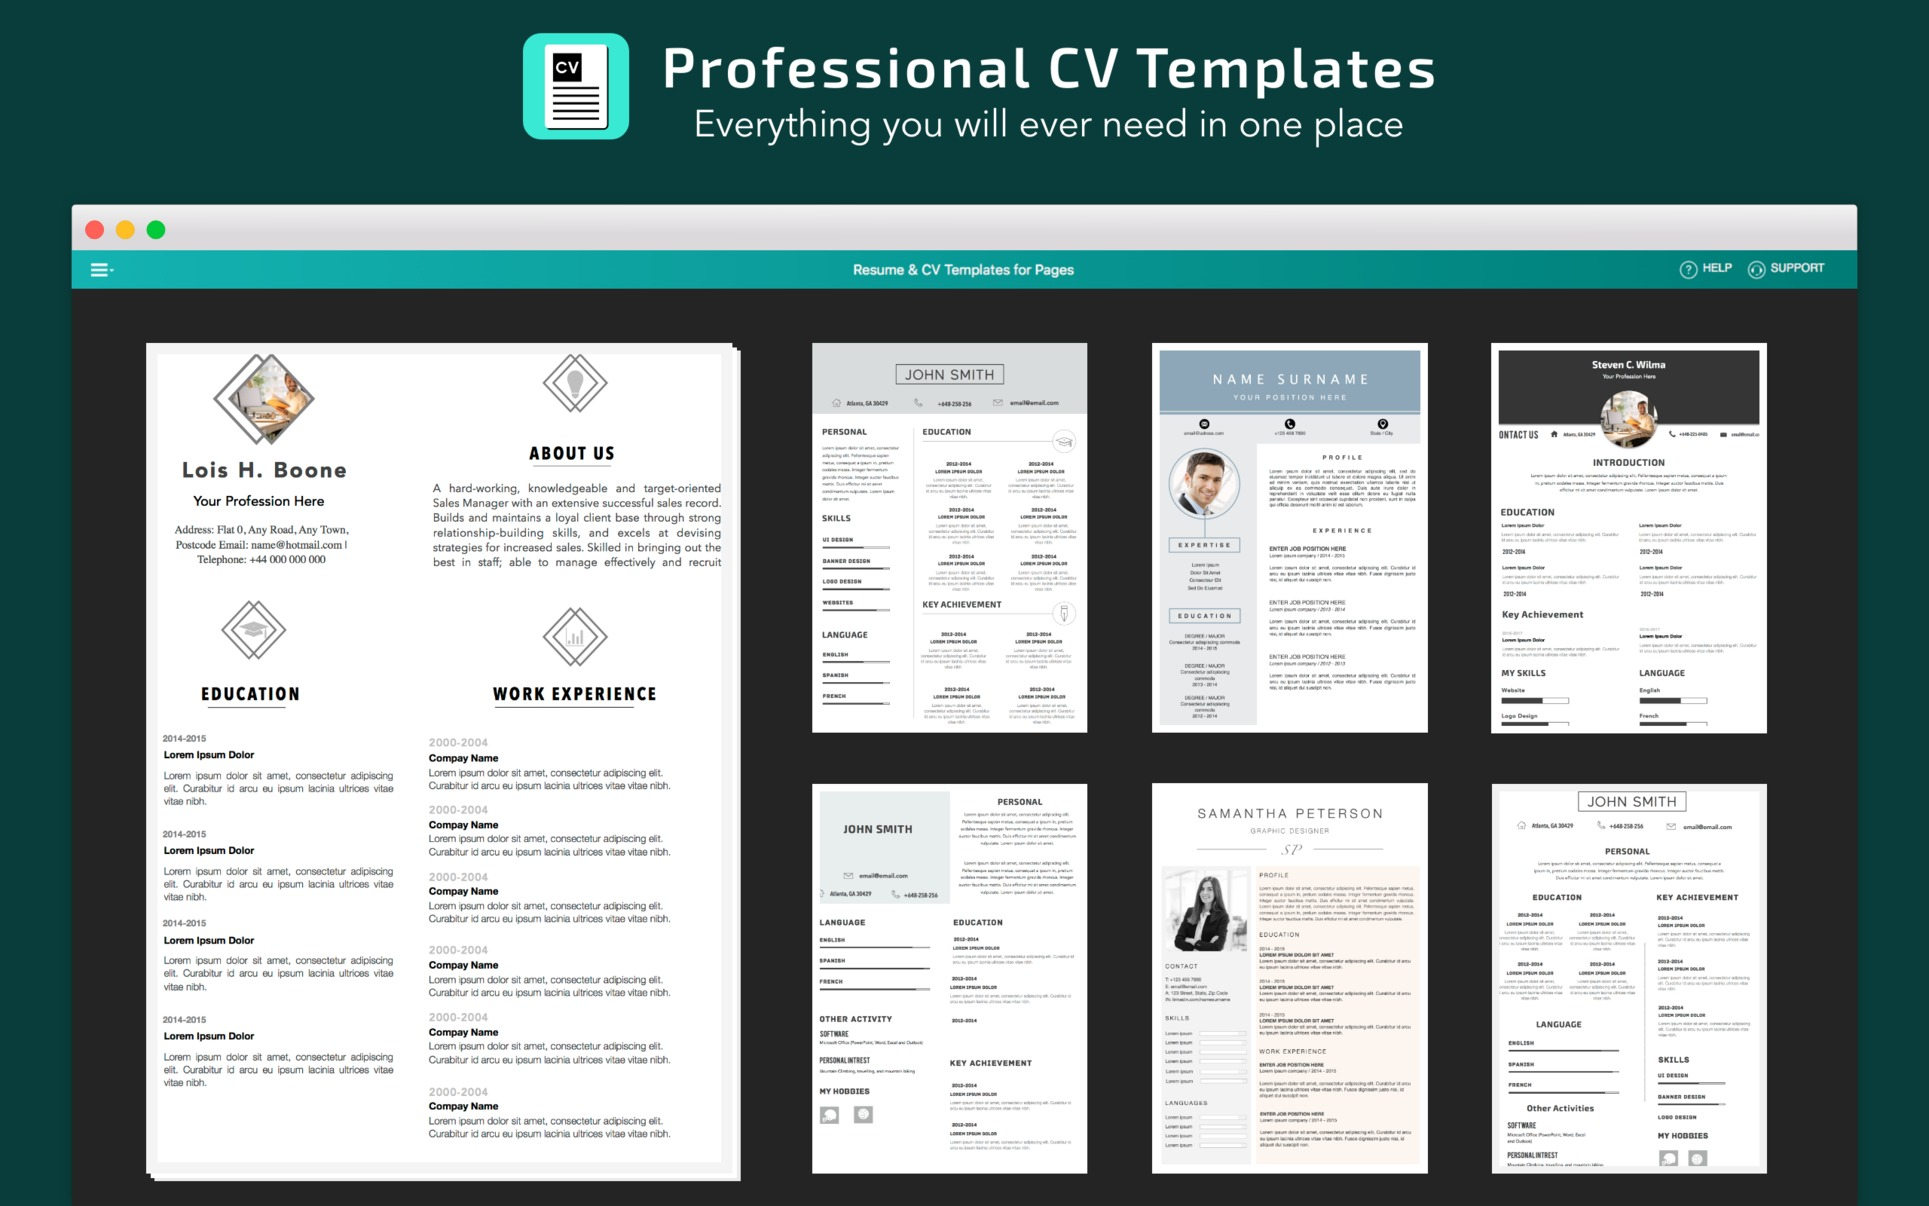 Screenshot 4 for Resume, CV Templates for Pages